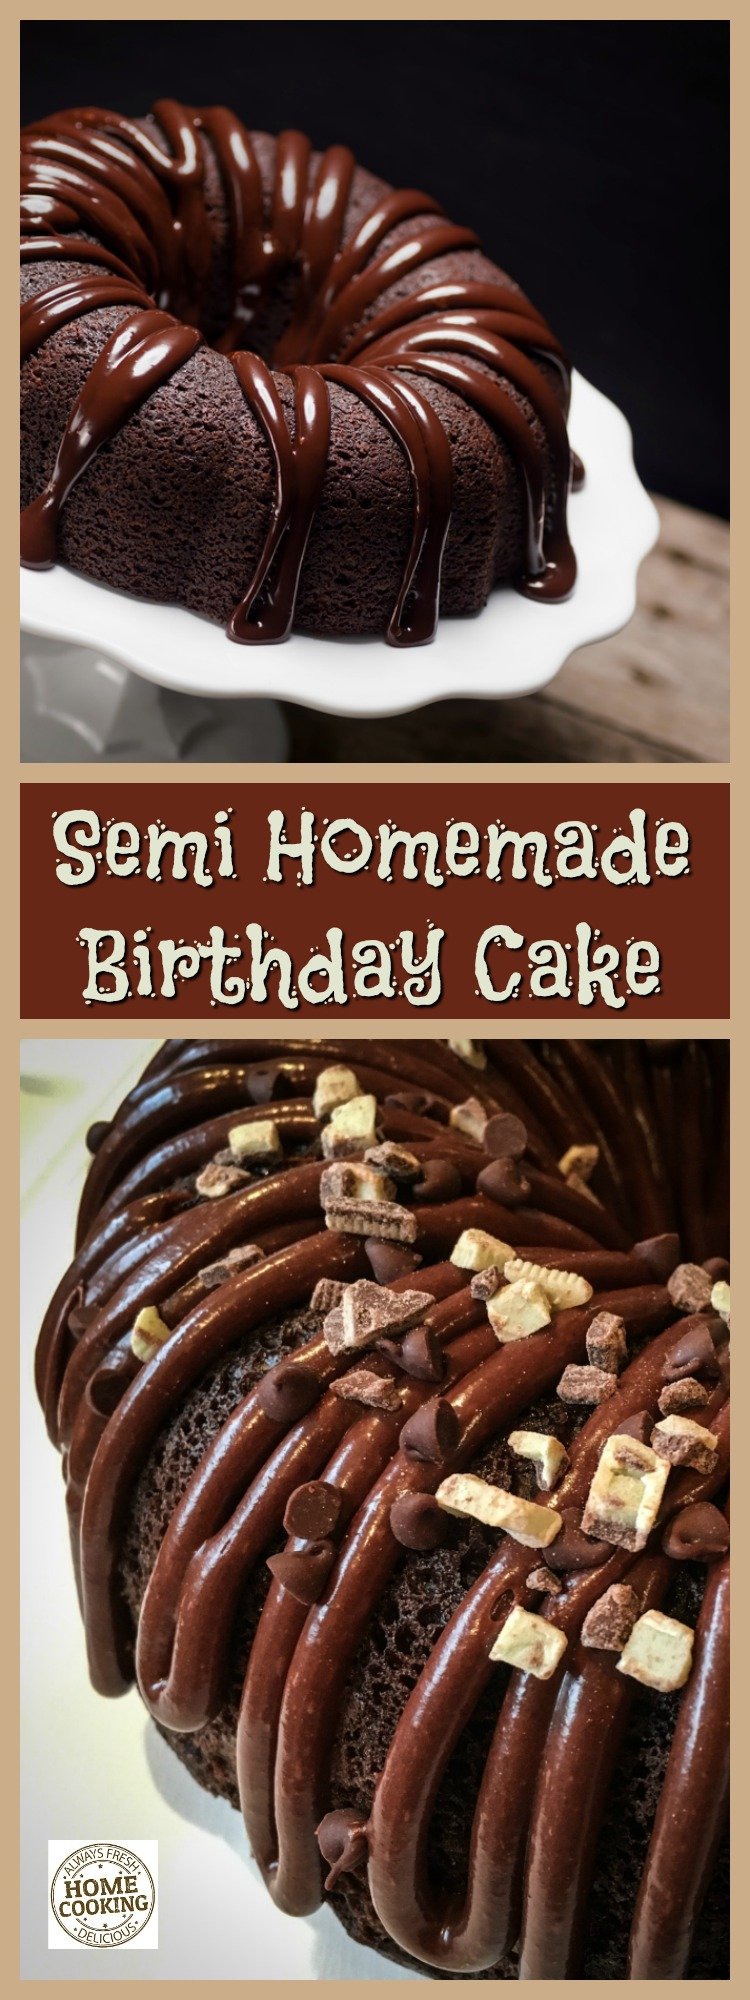 Bake one of the best semi homemade birthday cake for your family. It's super easy with a Bundt pan and a couple bags of crushed candy!